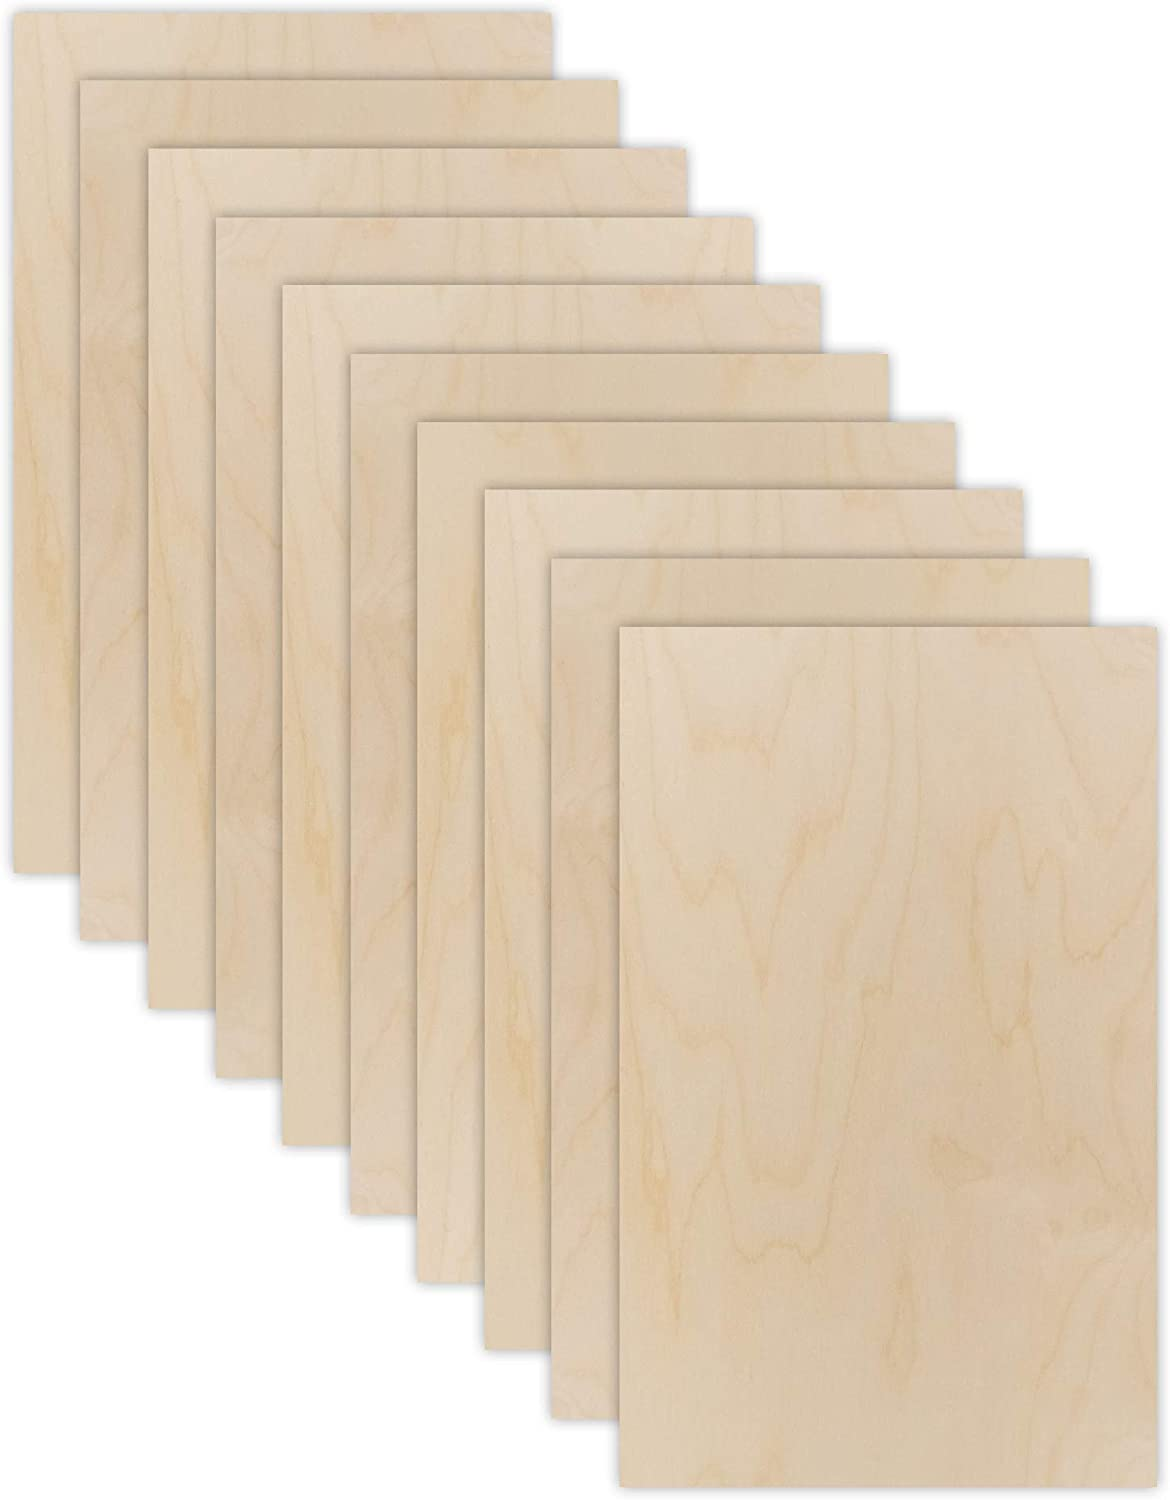 Mail order cheap 10 Pack 6mm Max 52% OFF 1 4thinch Birch 12†Baltic Plywood Premium